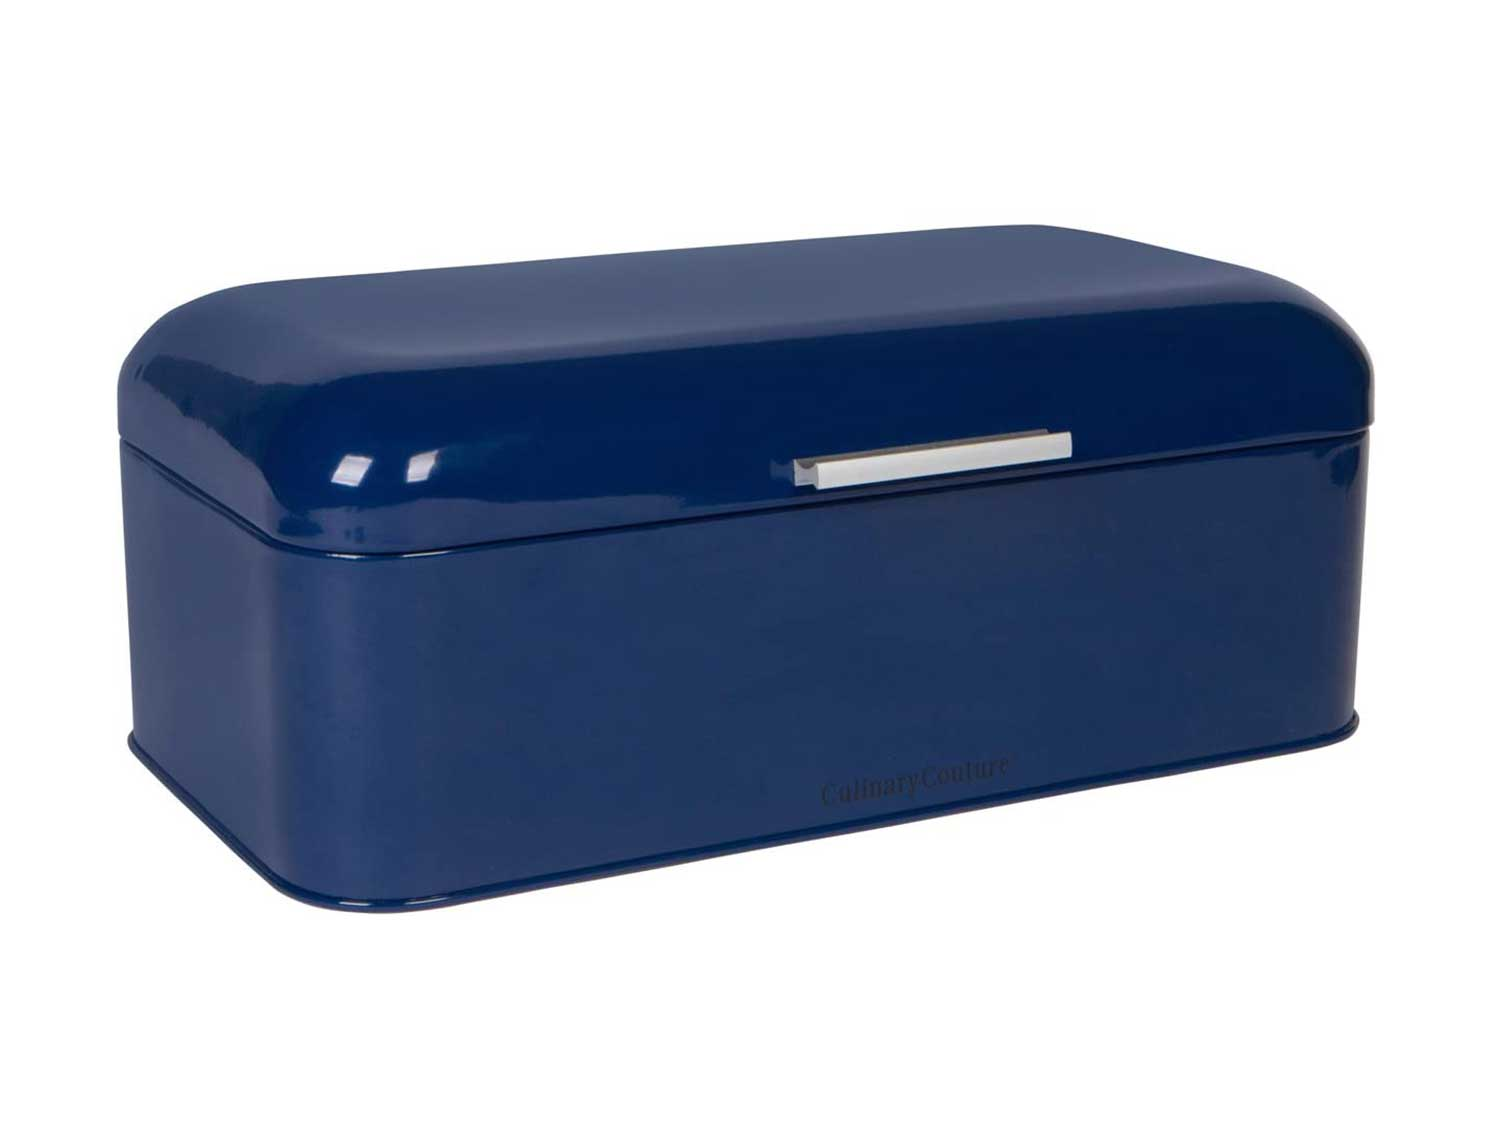 """Large Blue Bread Box - Powder Coated Stainless Steel - Extra Large Bin for Loaves, Bagels & More: 16.5"""" x 8.9"""" x 6.5"""""""